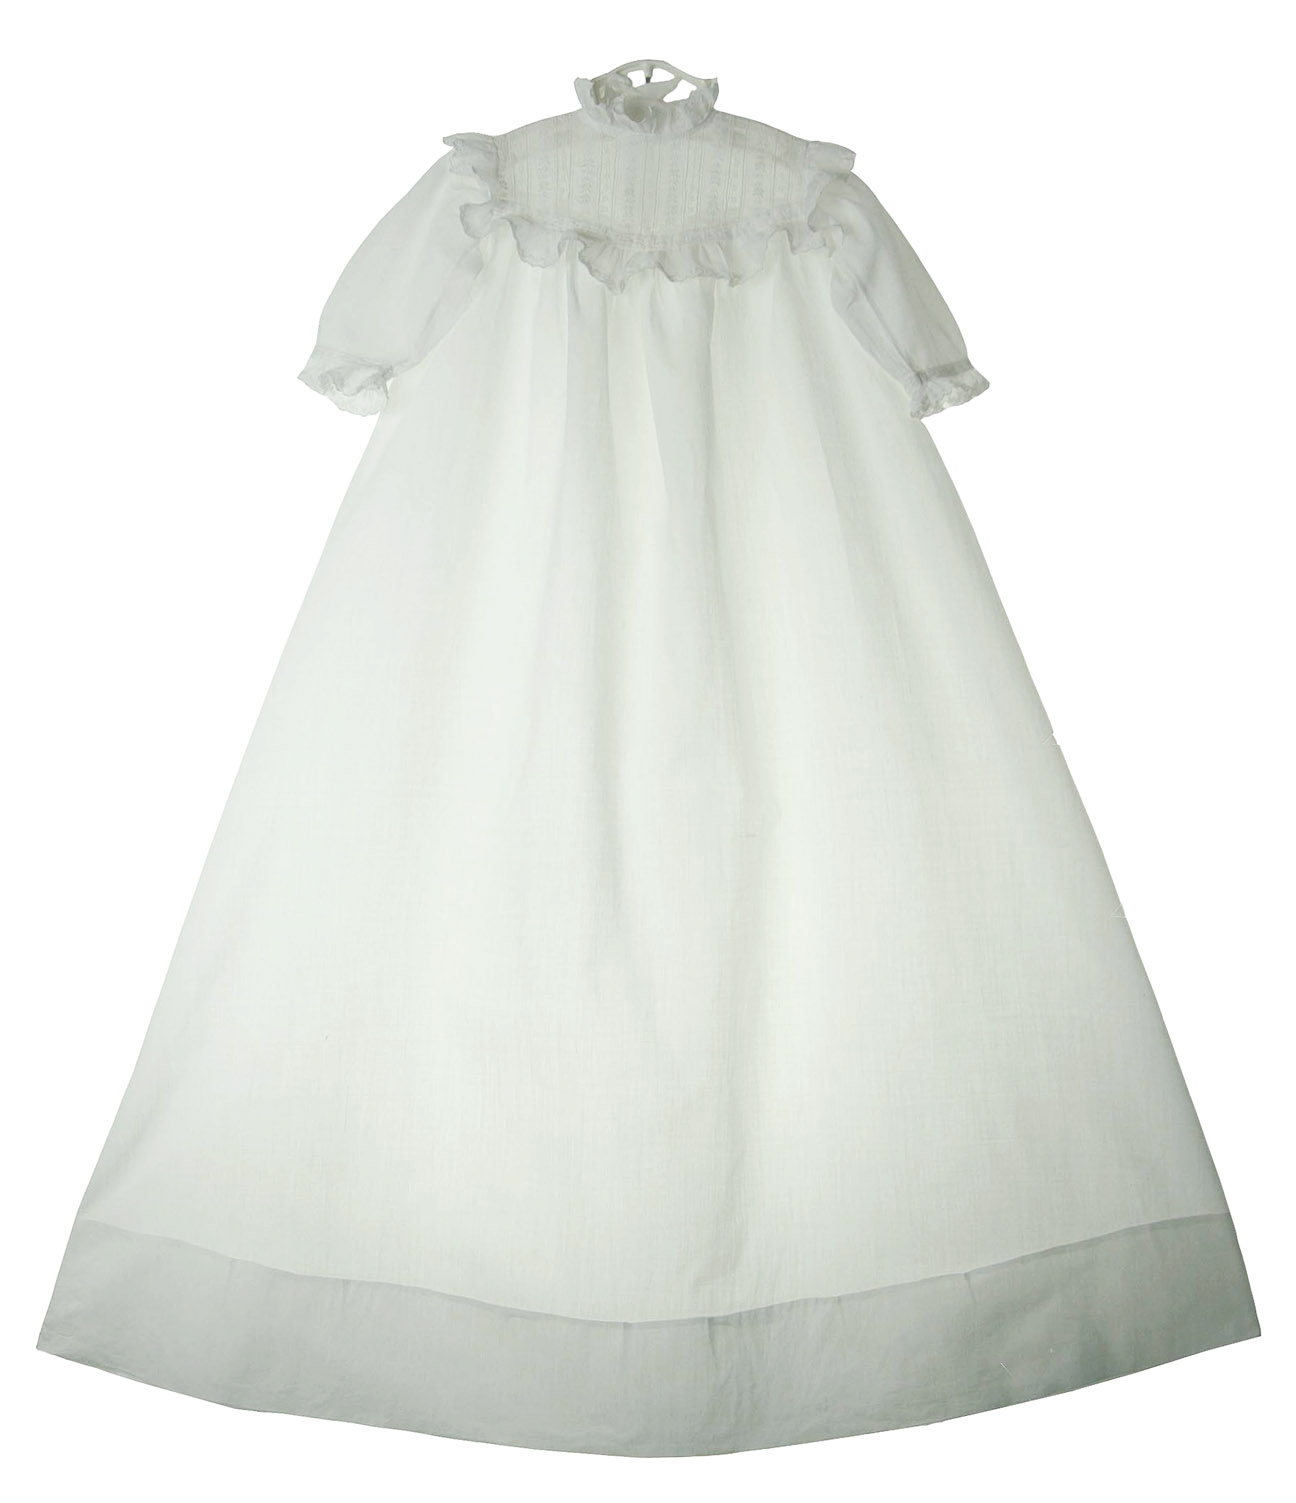 heirloom Victorian christening gown with pintucks and embroidery ...